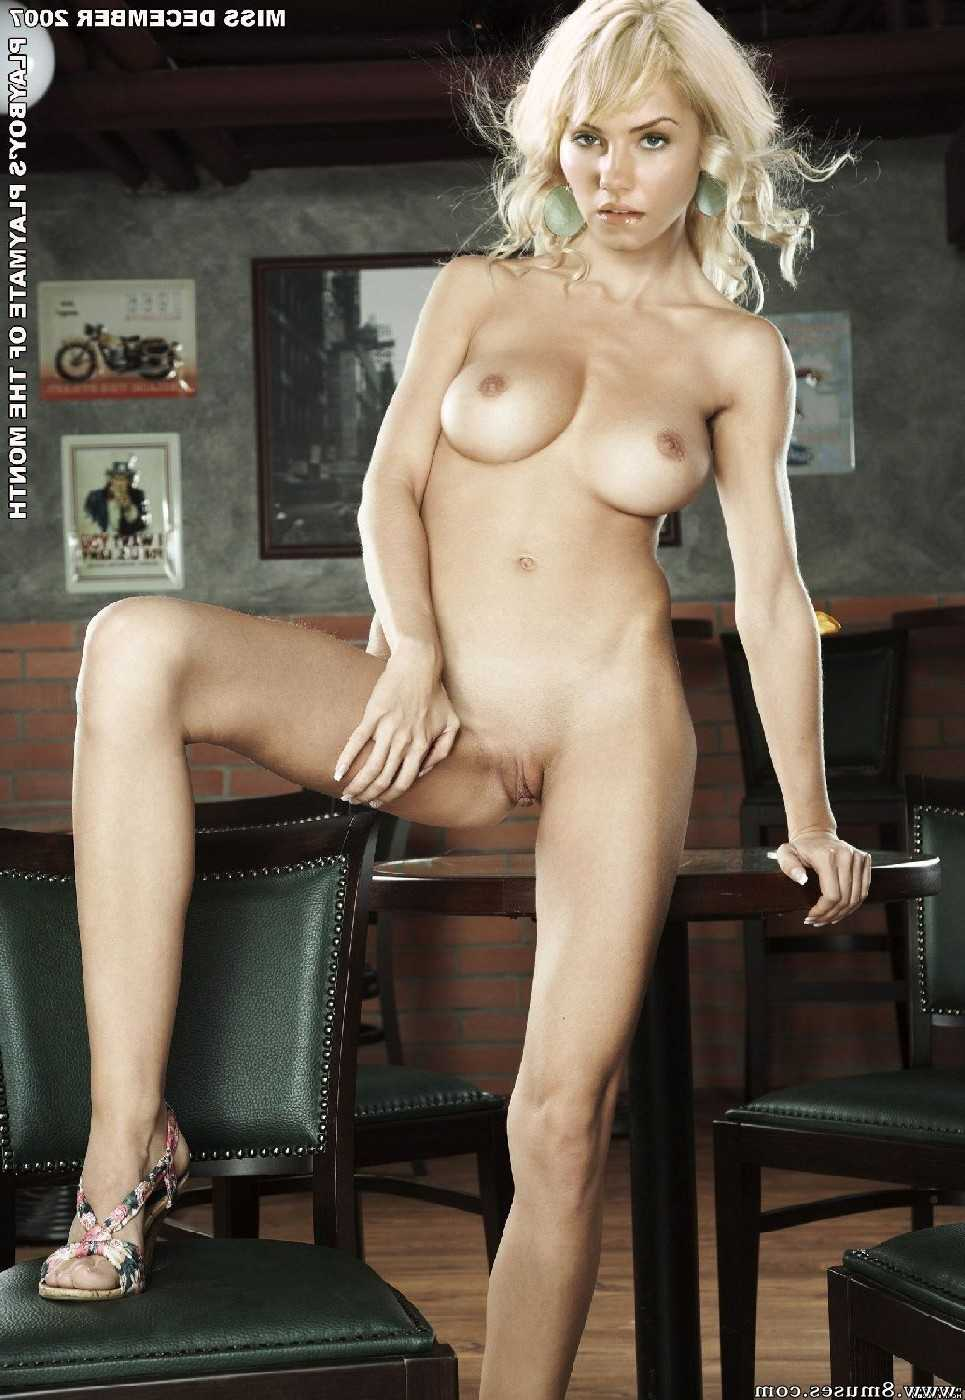 Fake-Celebrities-Sex-Pictures/Elisha-Cuthbert Elisha_Cuthbert__8muses_-_Sex_and_Porn_Comics_248.jpg